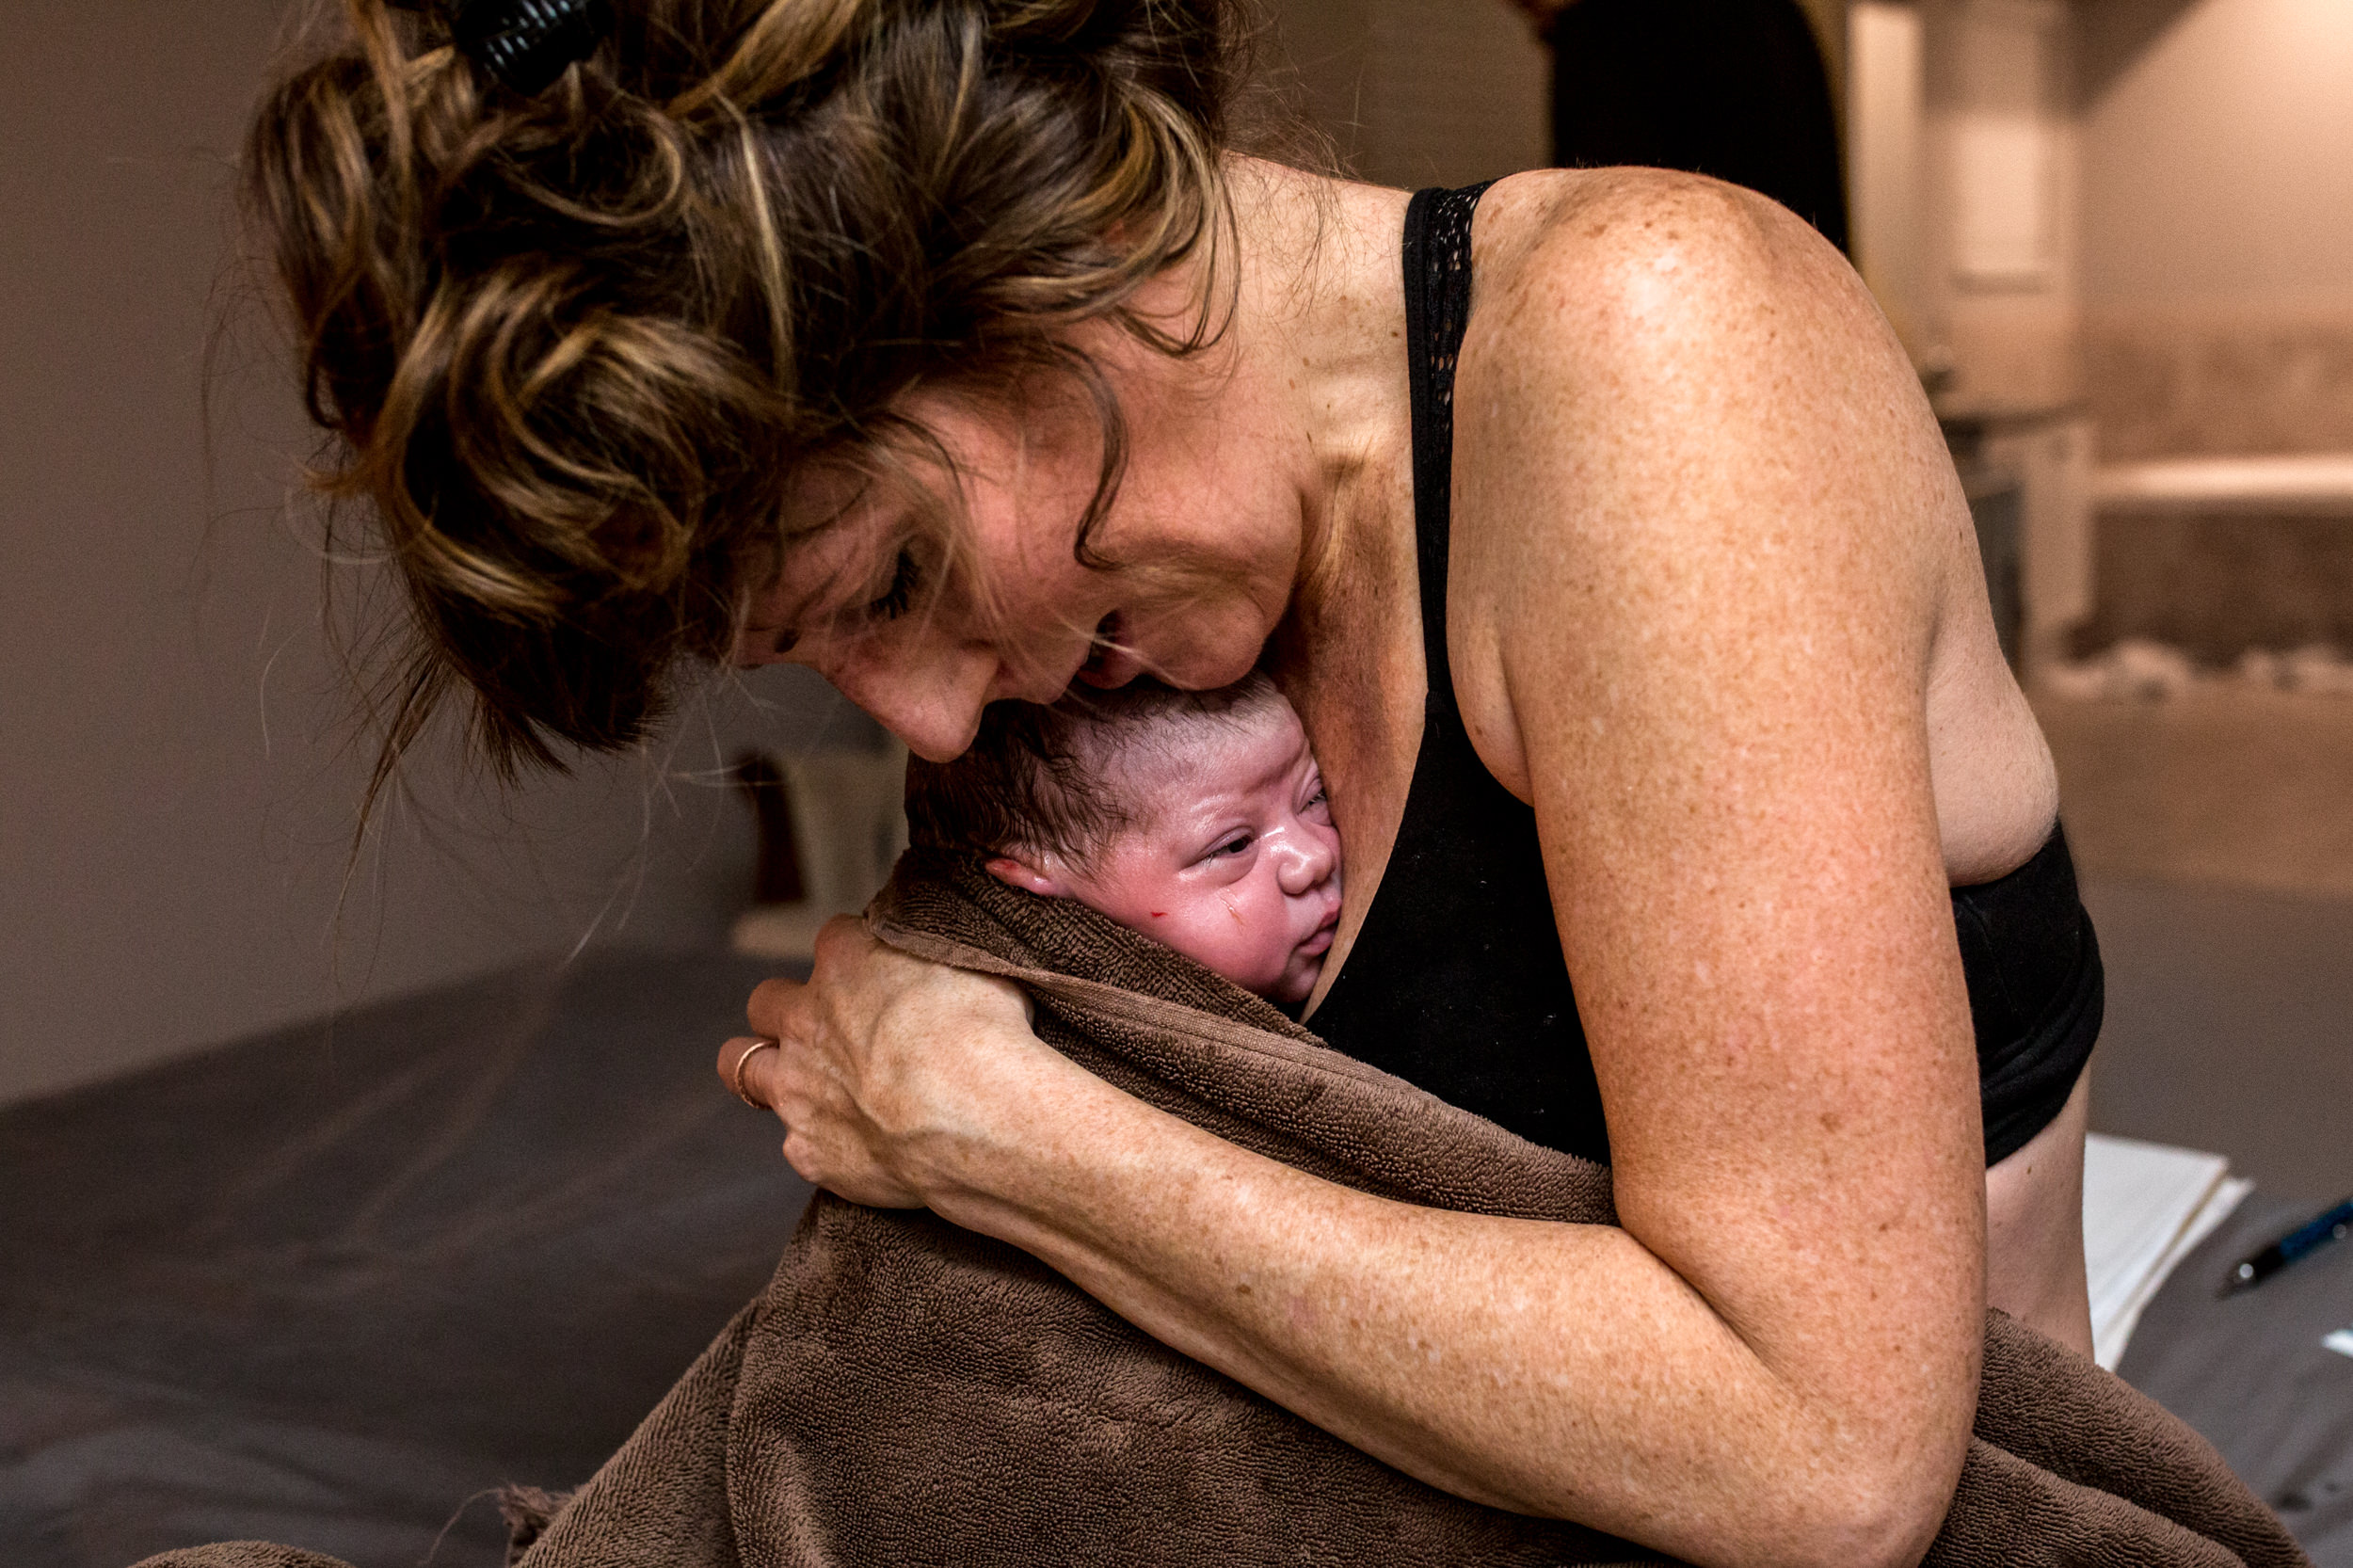 mom holding her newborn baby after delivery